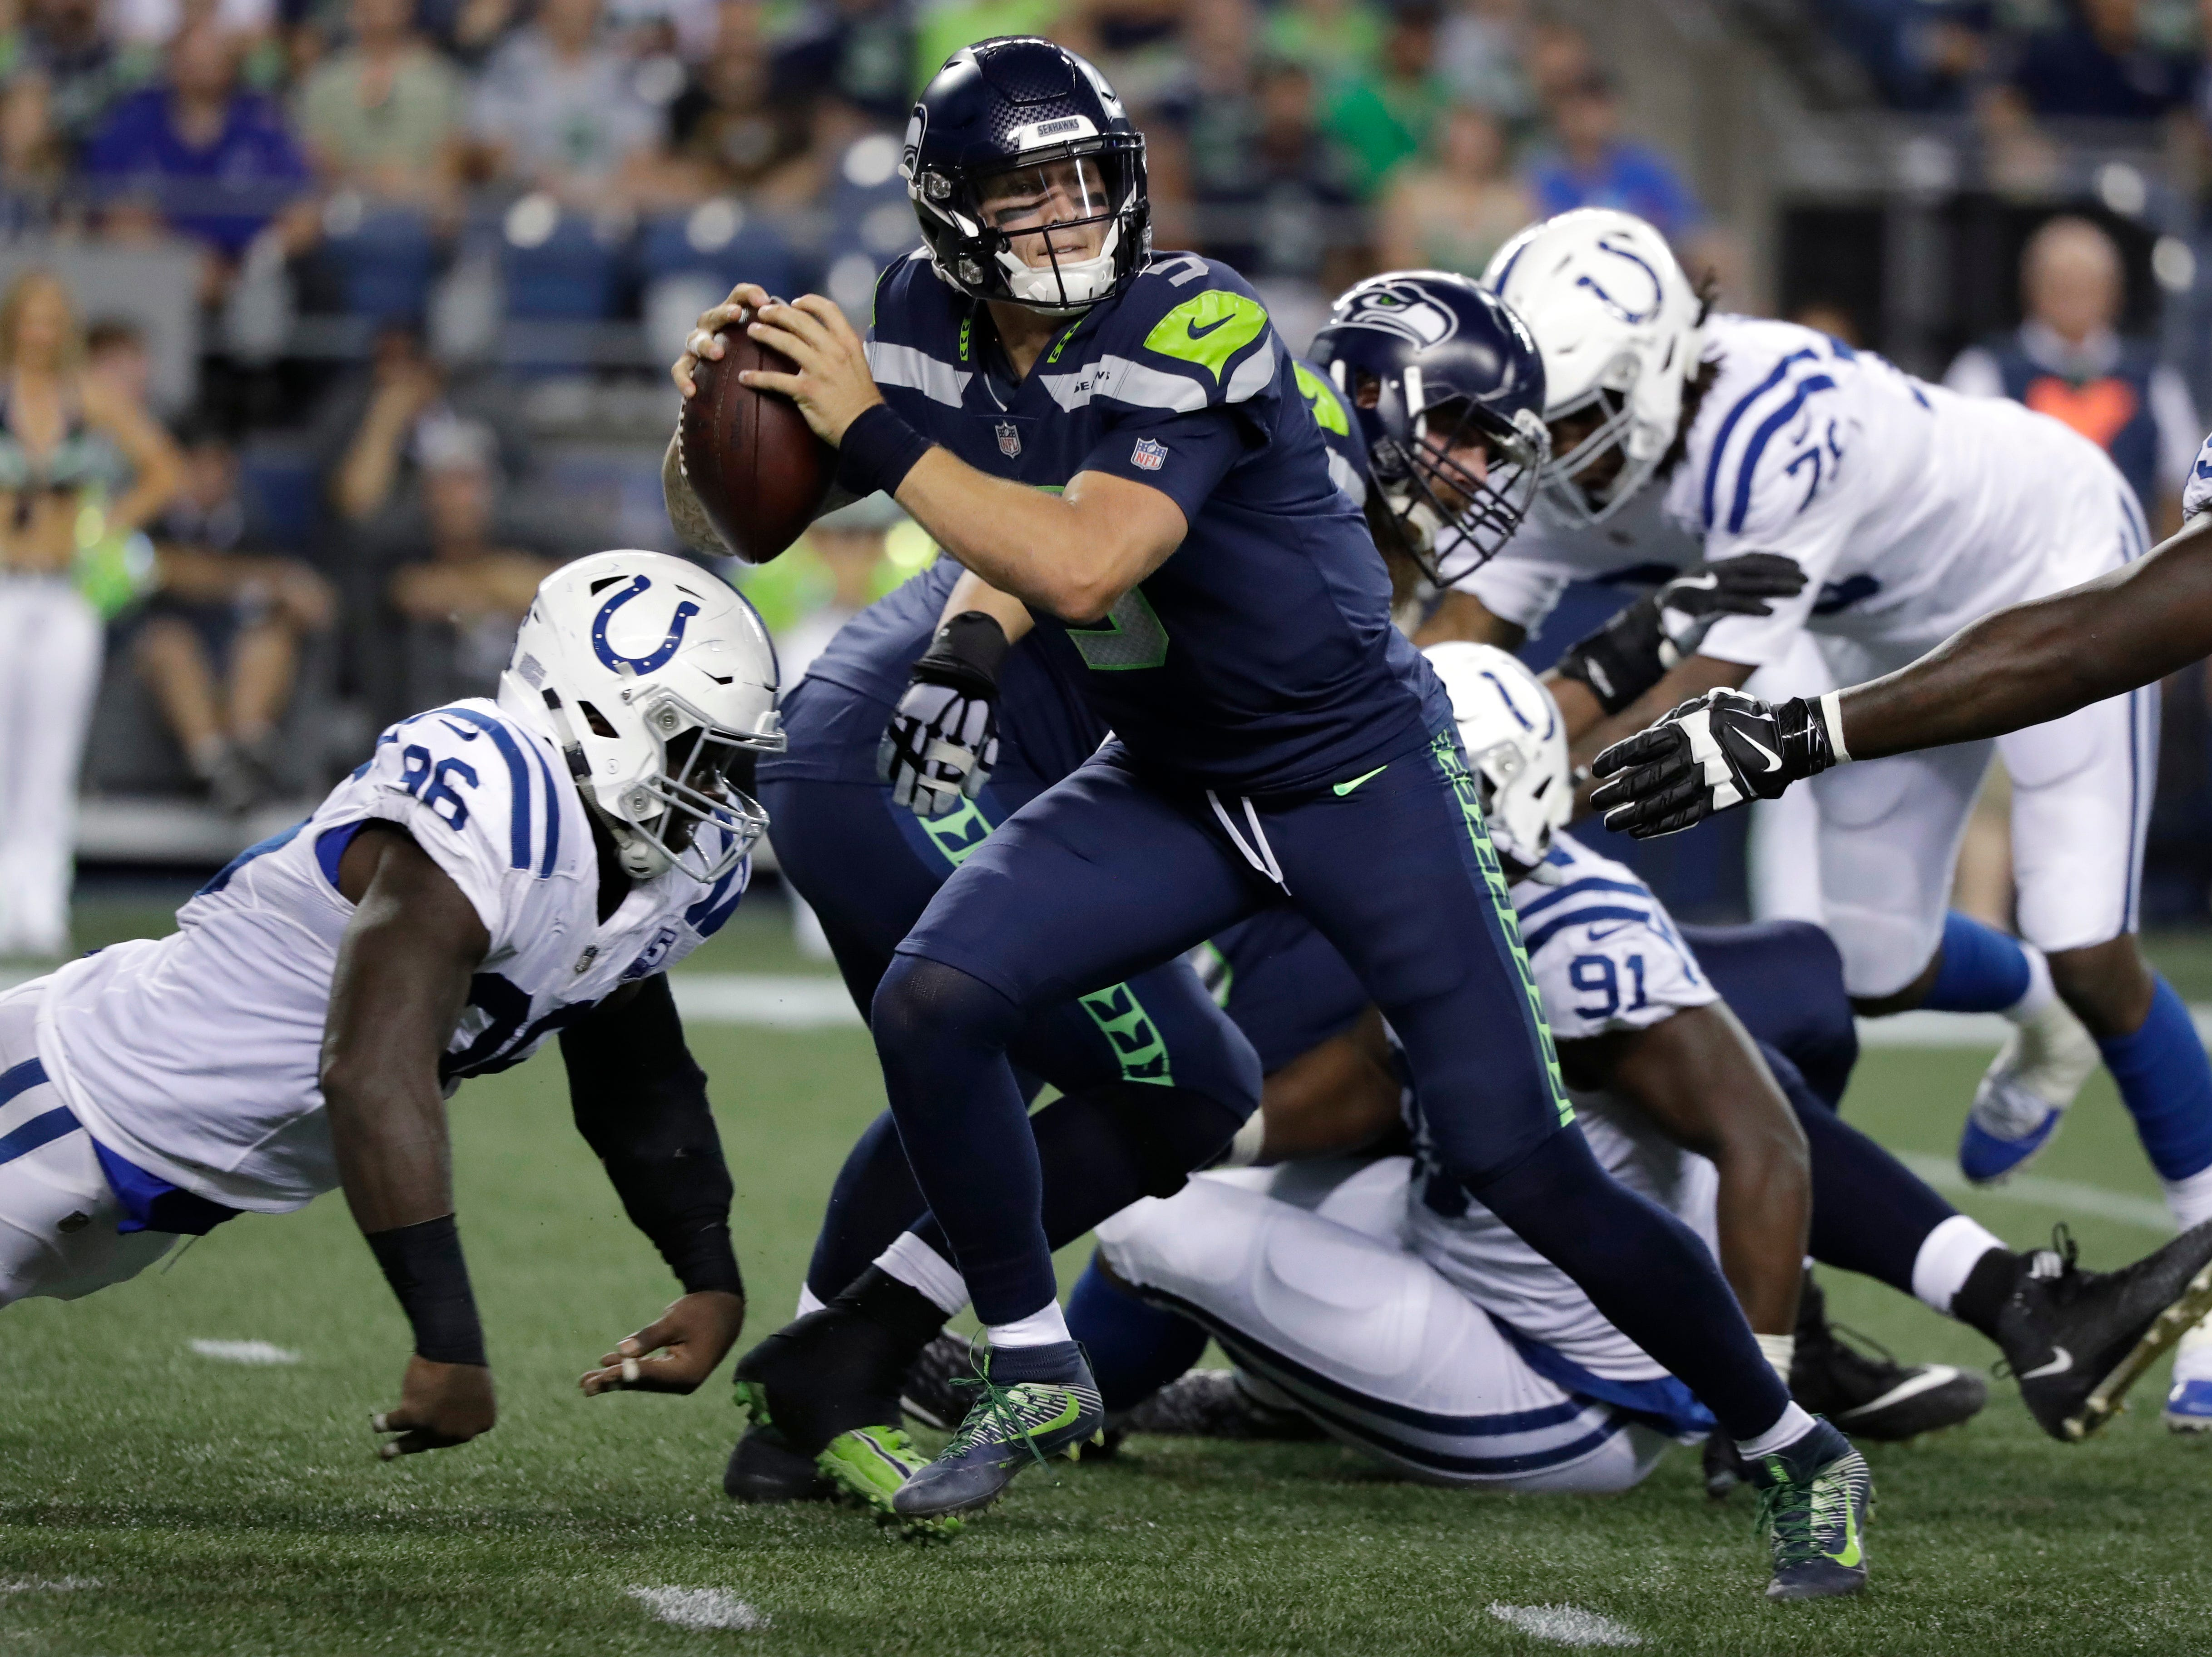 Seattle Seahawks quarterback Alex McGough looks to throw against the Indianapolis Colts during the second half of an NFL football preseason game Thursday, Aug. 9, 2018, in Seattle. (AP Photo/Elaine Thompson)